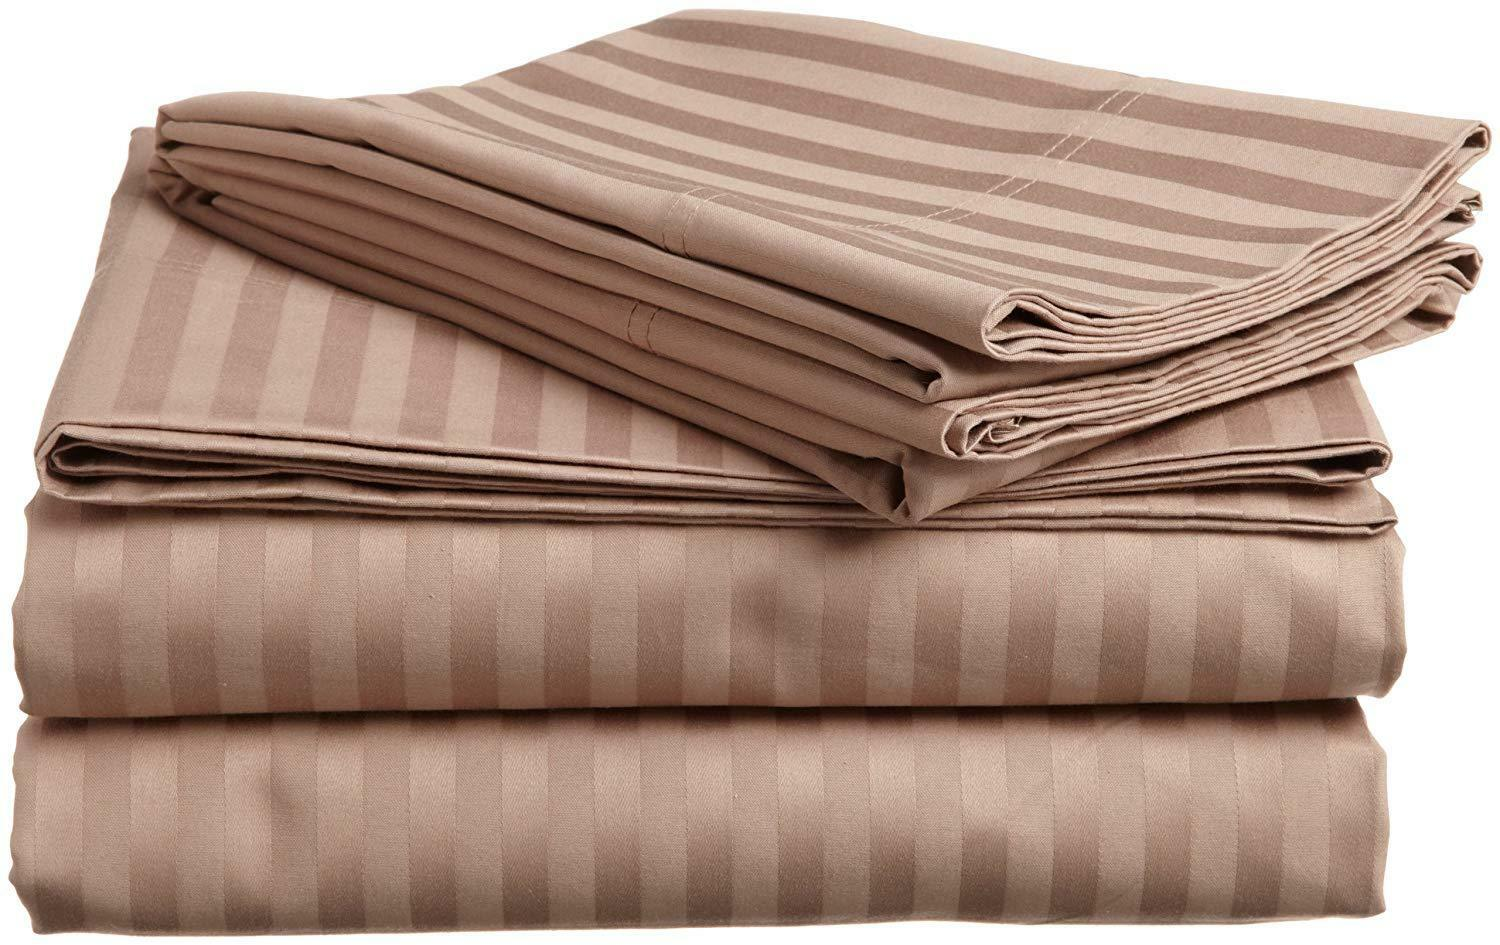 Cotton Bed Sheet Set 4 Pcs Queen Size Taupe Striped 600 Tc 100% Egyptian Cotton